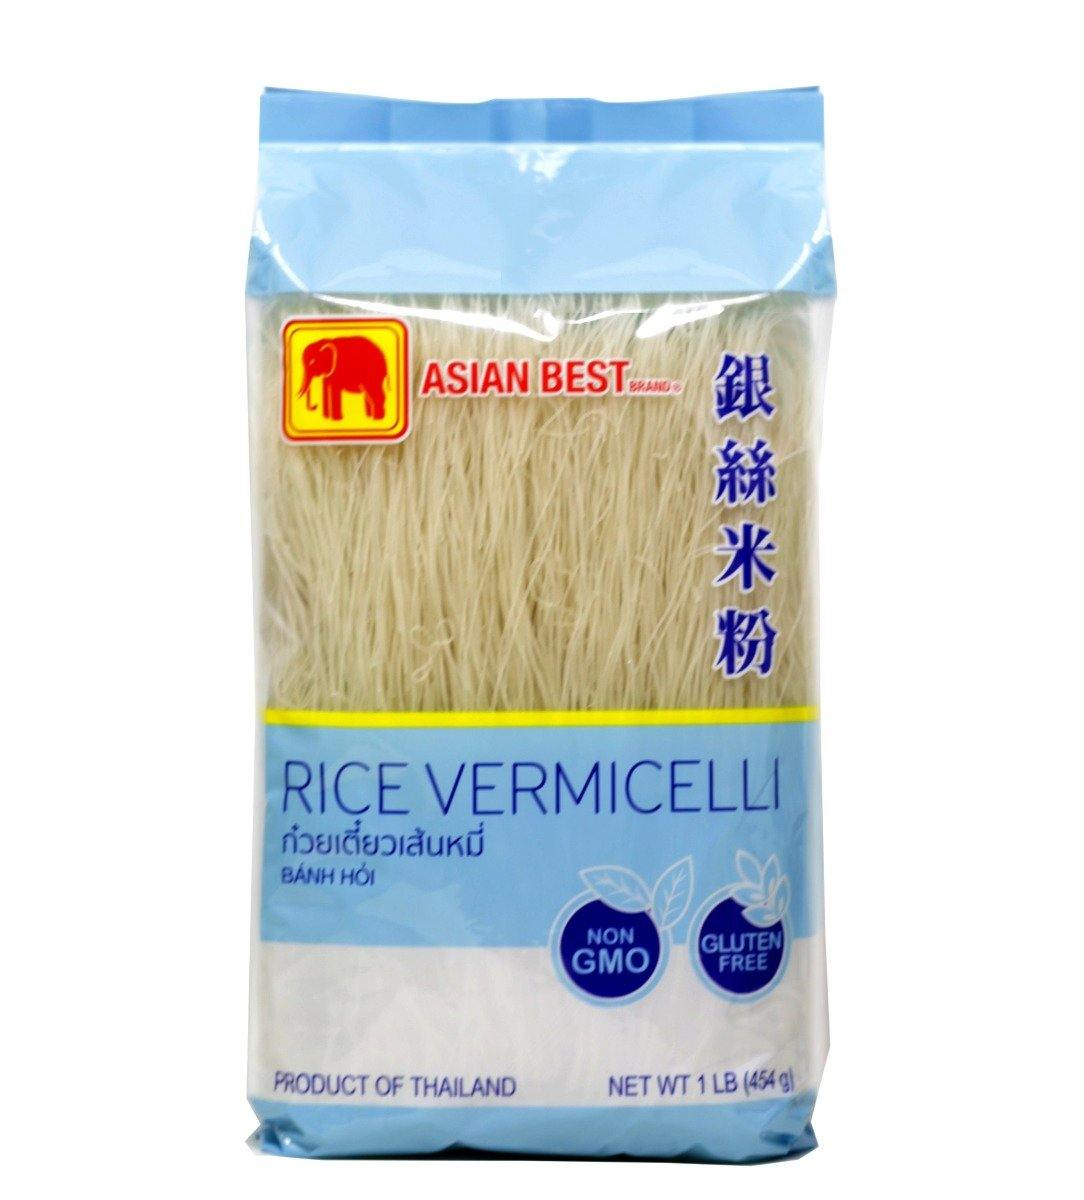 Asian Best Thai Dry Rice Vermicelli Noodles | Thin Rice Sticks | Banh Hoi 1LB (454 g) - 银丝米粉